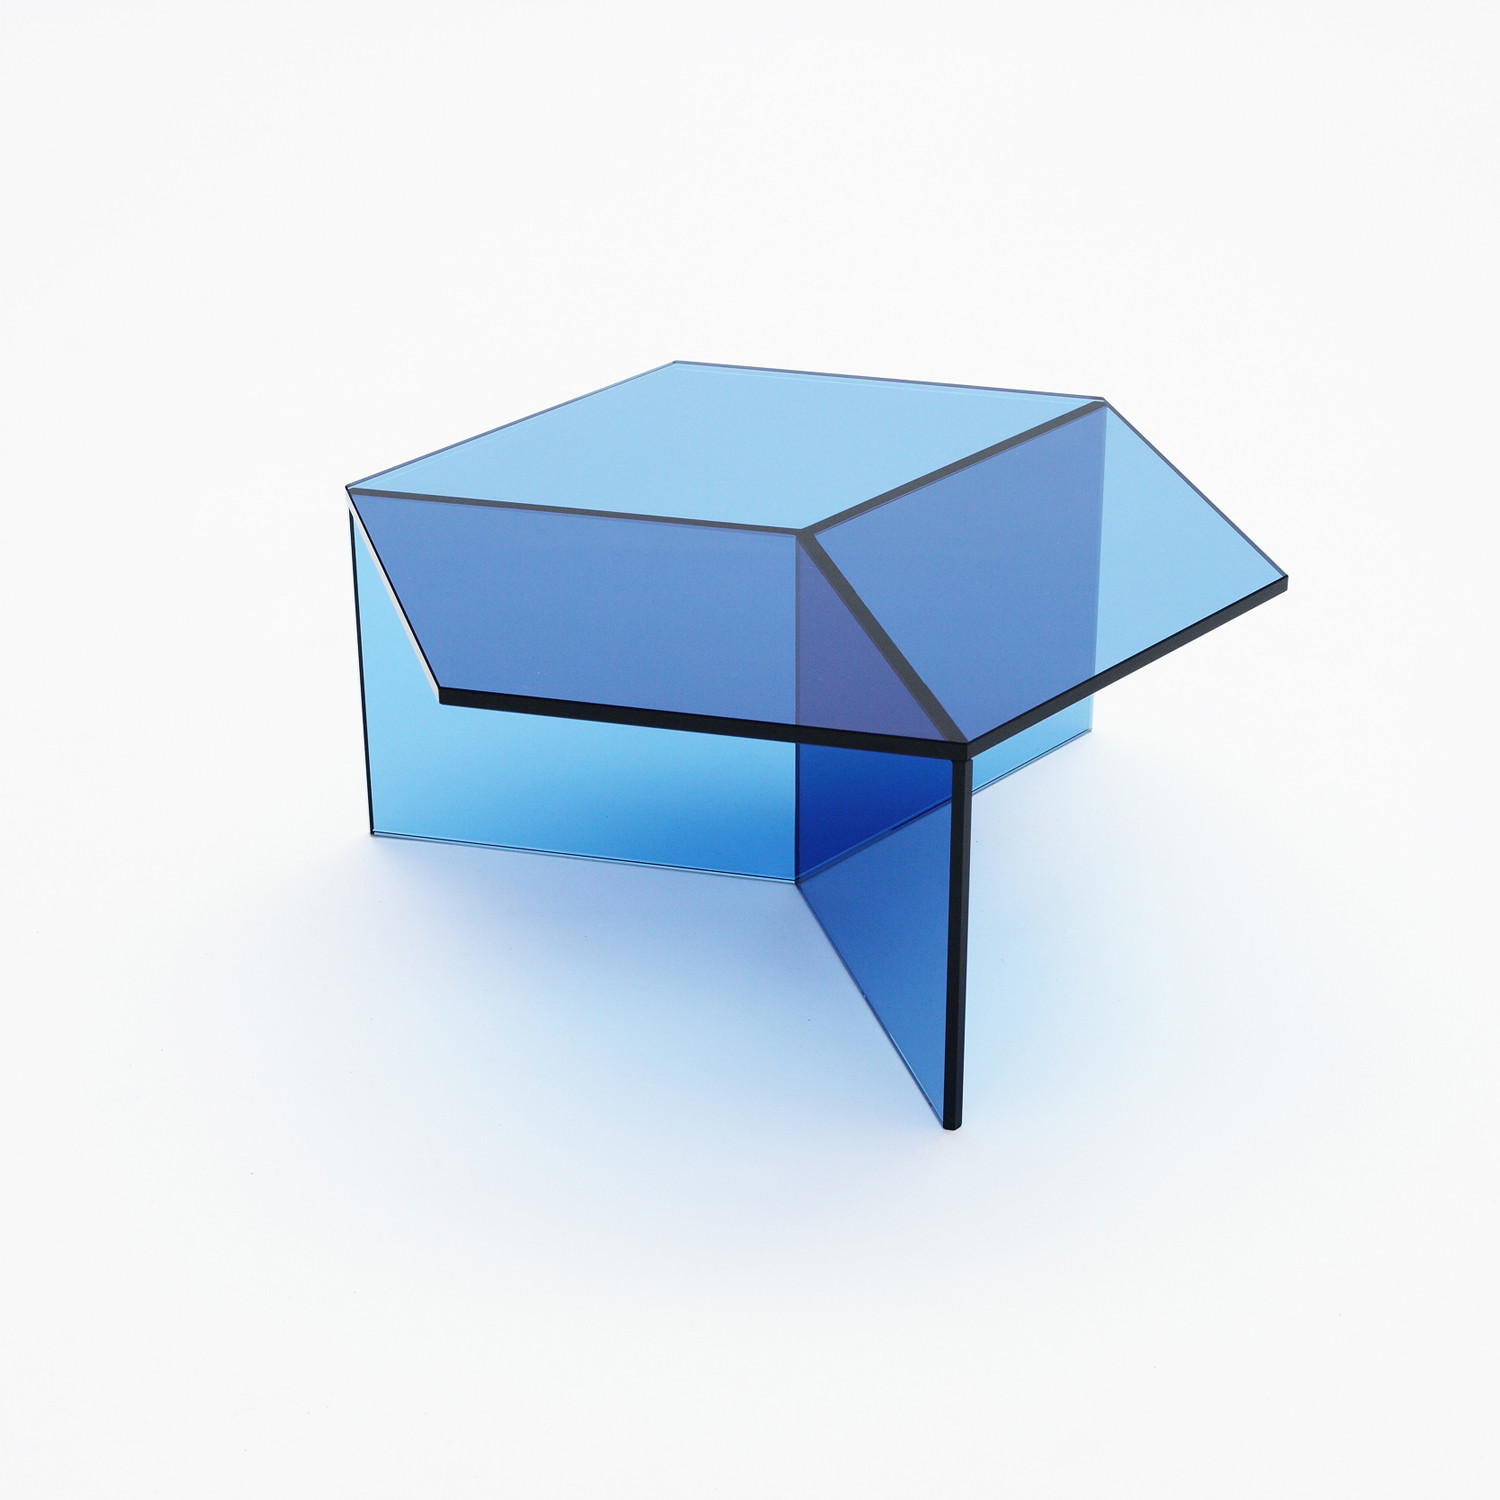 Captivating Isom Glass Table // Blue